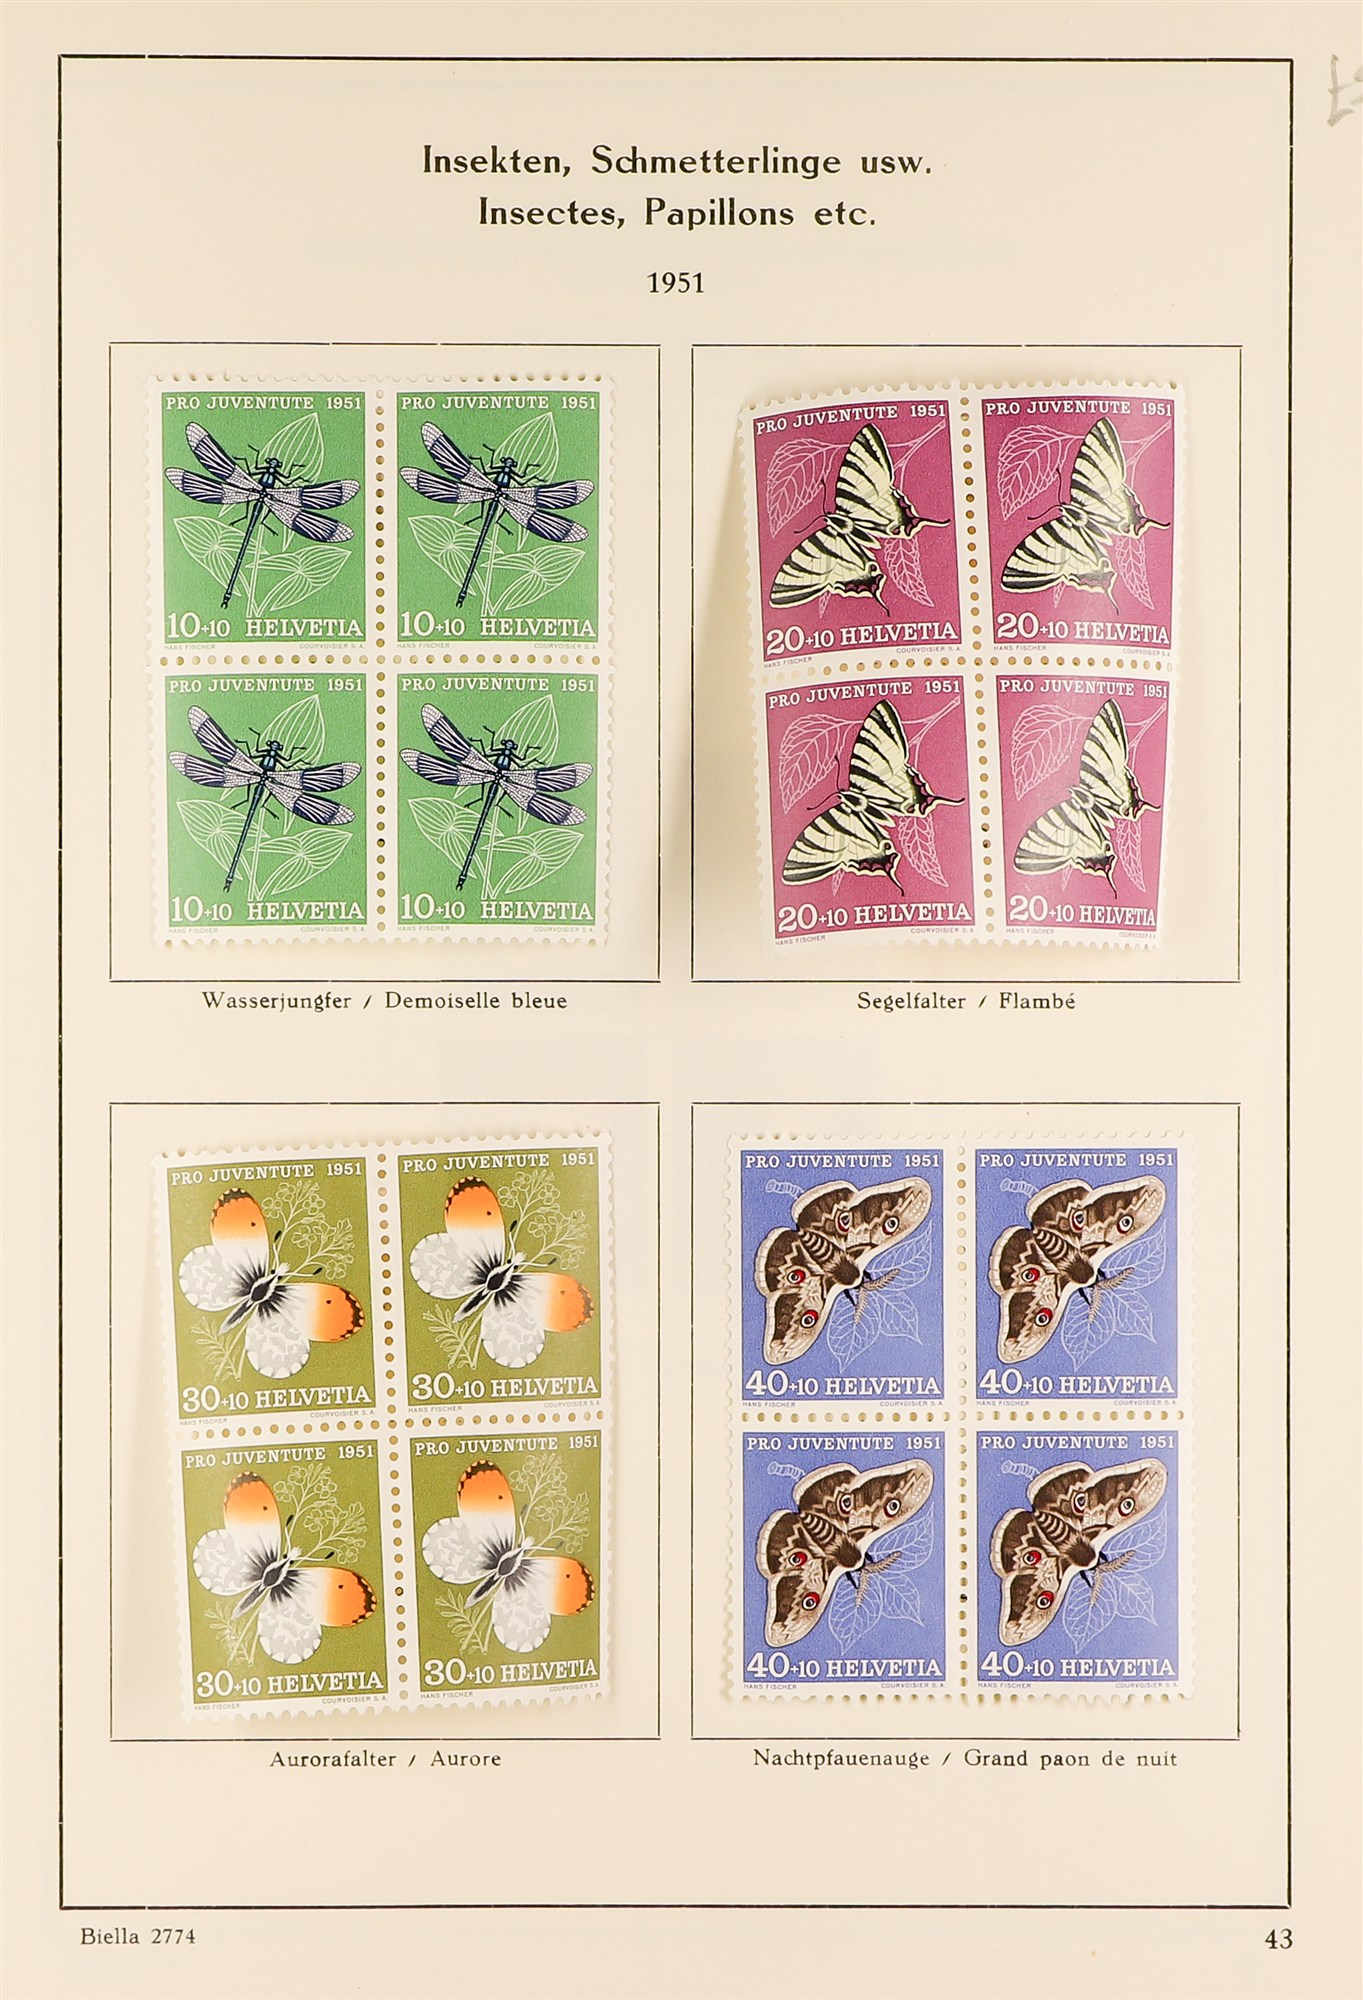 SWITZERLAND 1913-57 PRO JUVENTUTE collection of fine mint/never hinged blocks of four, S.T.C. £1580. - Image 6 of 8